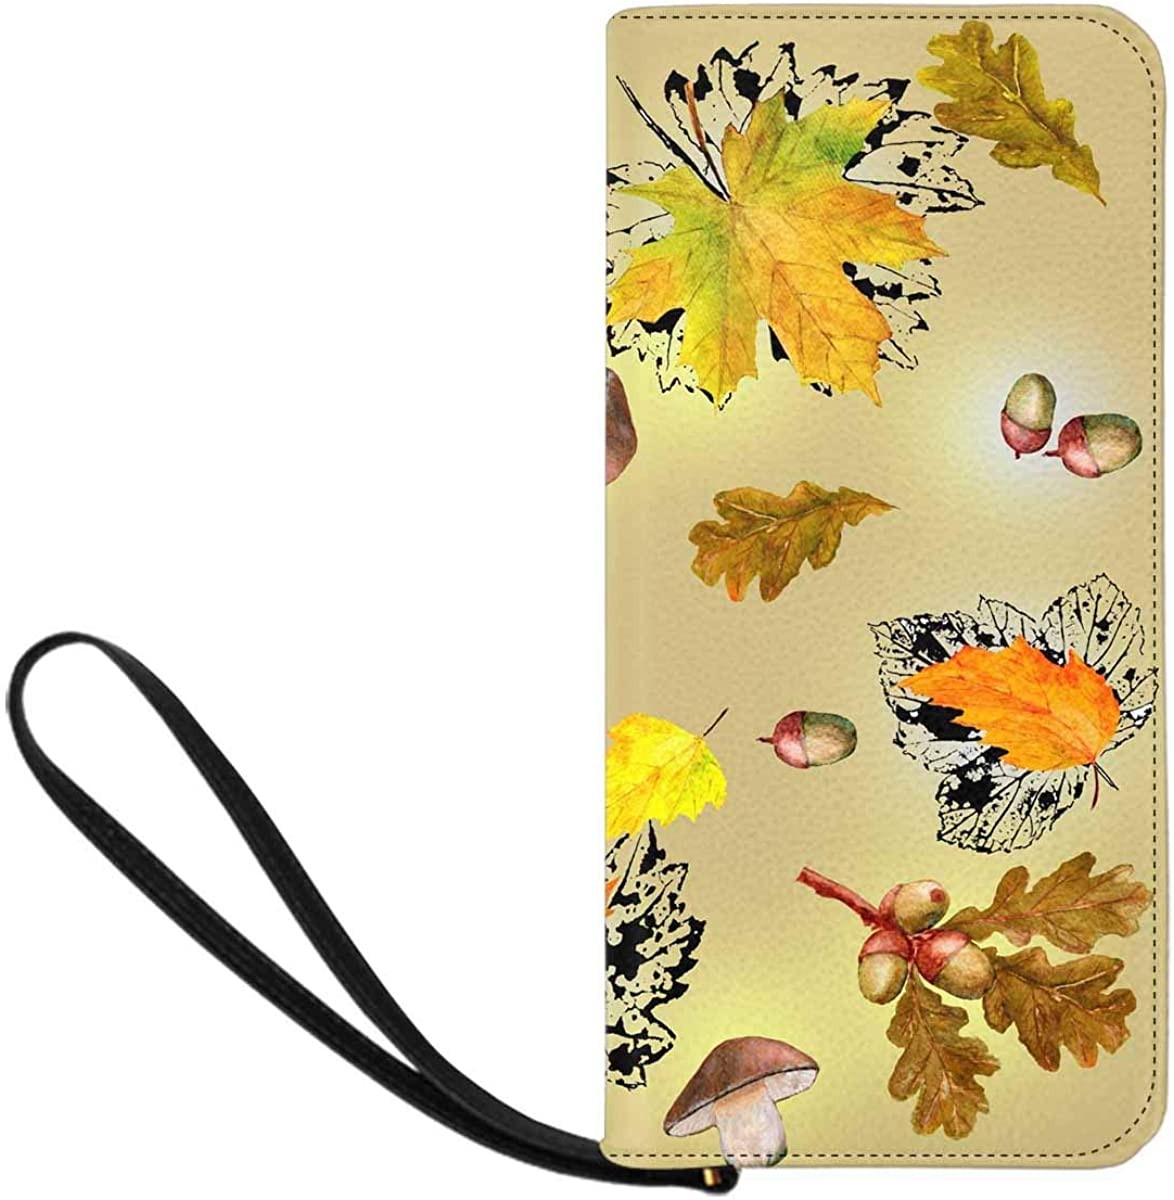 INTERESTPRINT Colorful Autumn Maple Leaf Clutch Purse for Women Evening Party